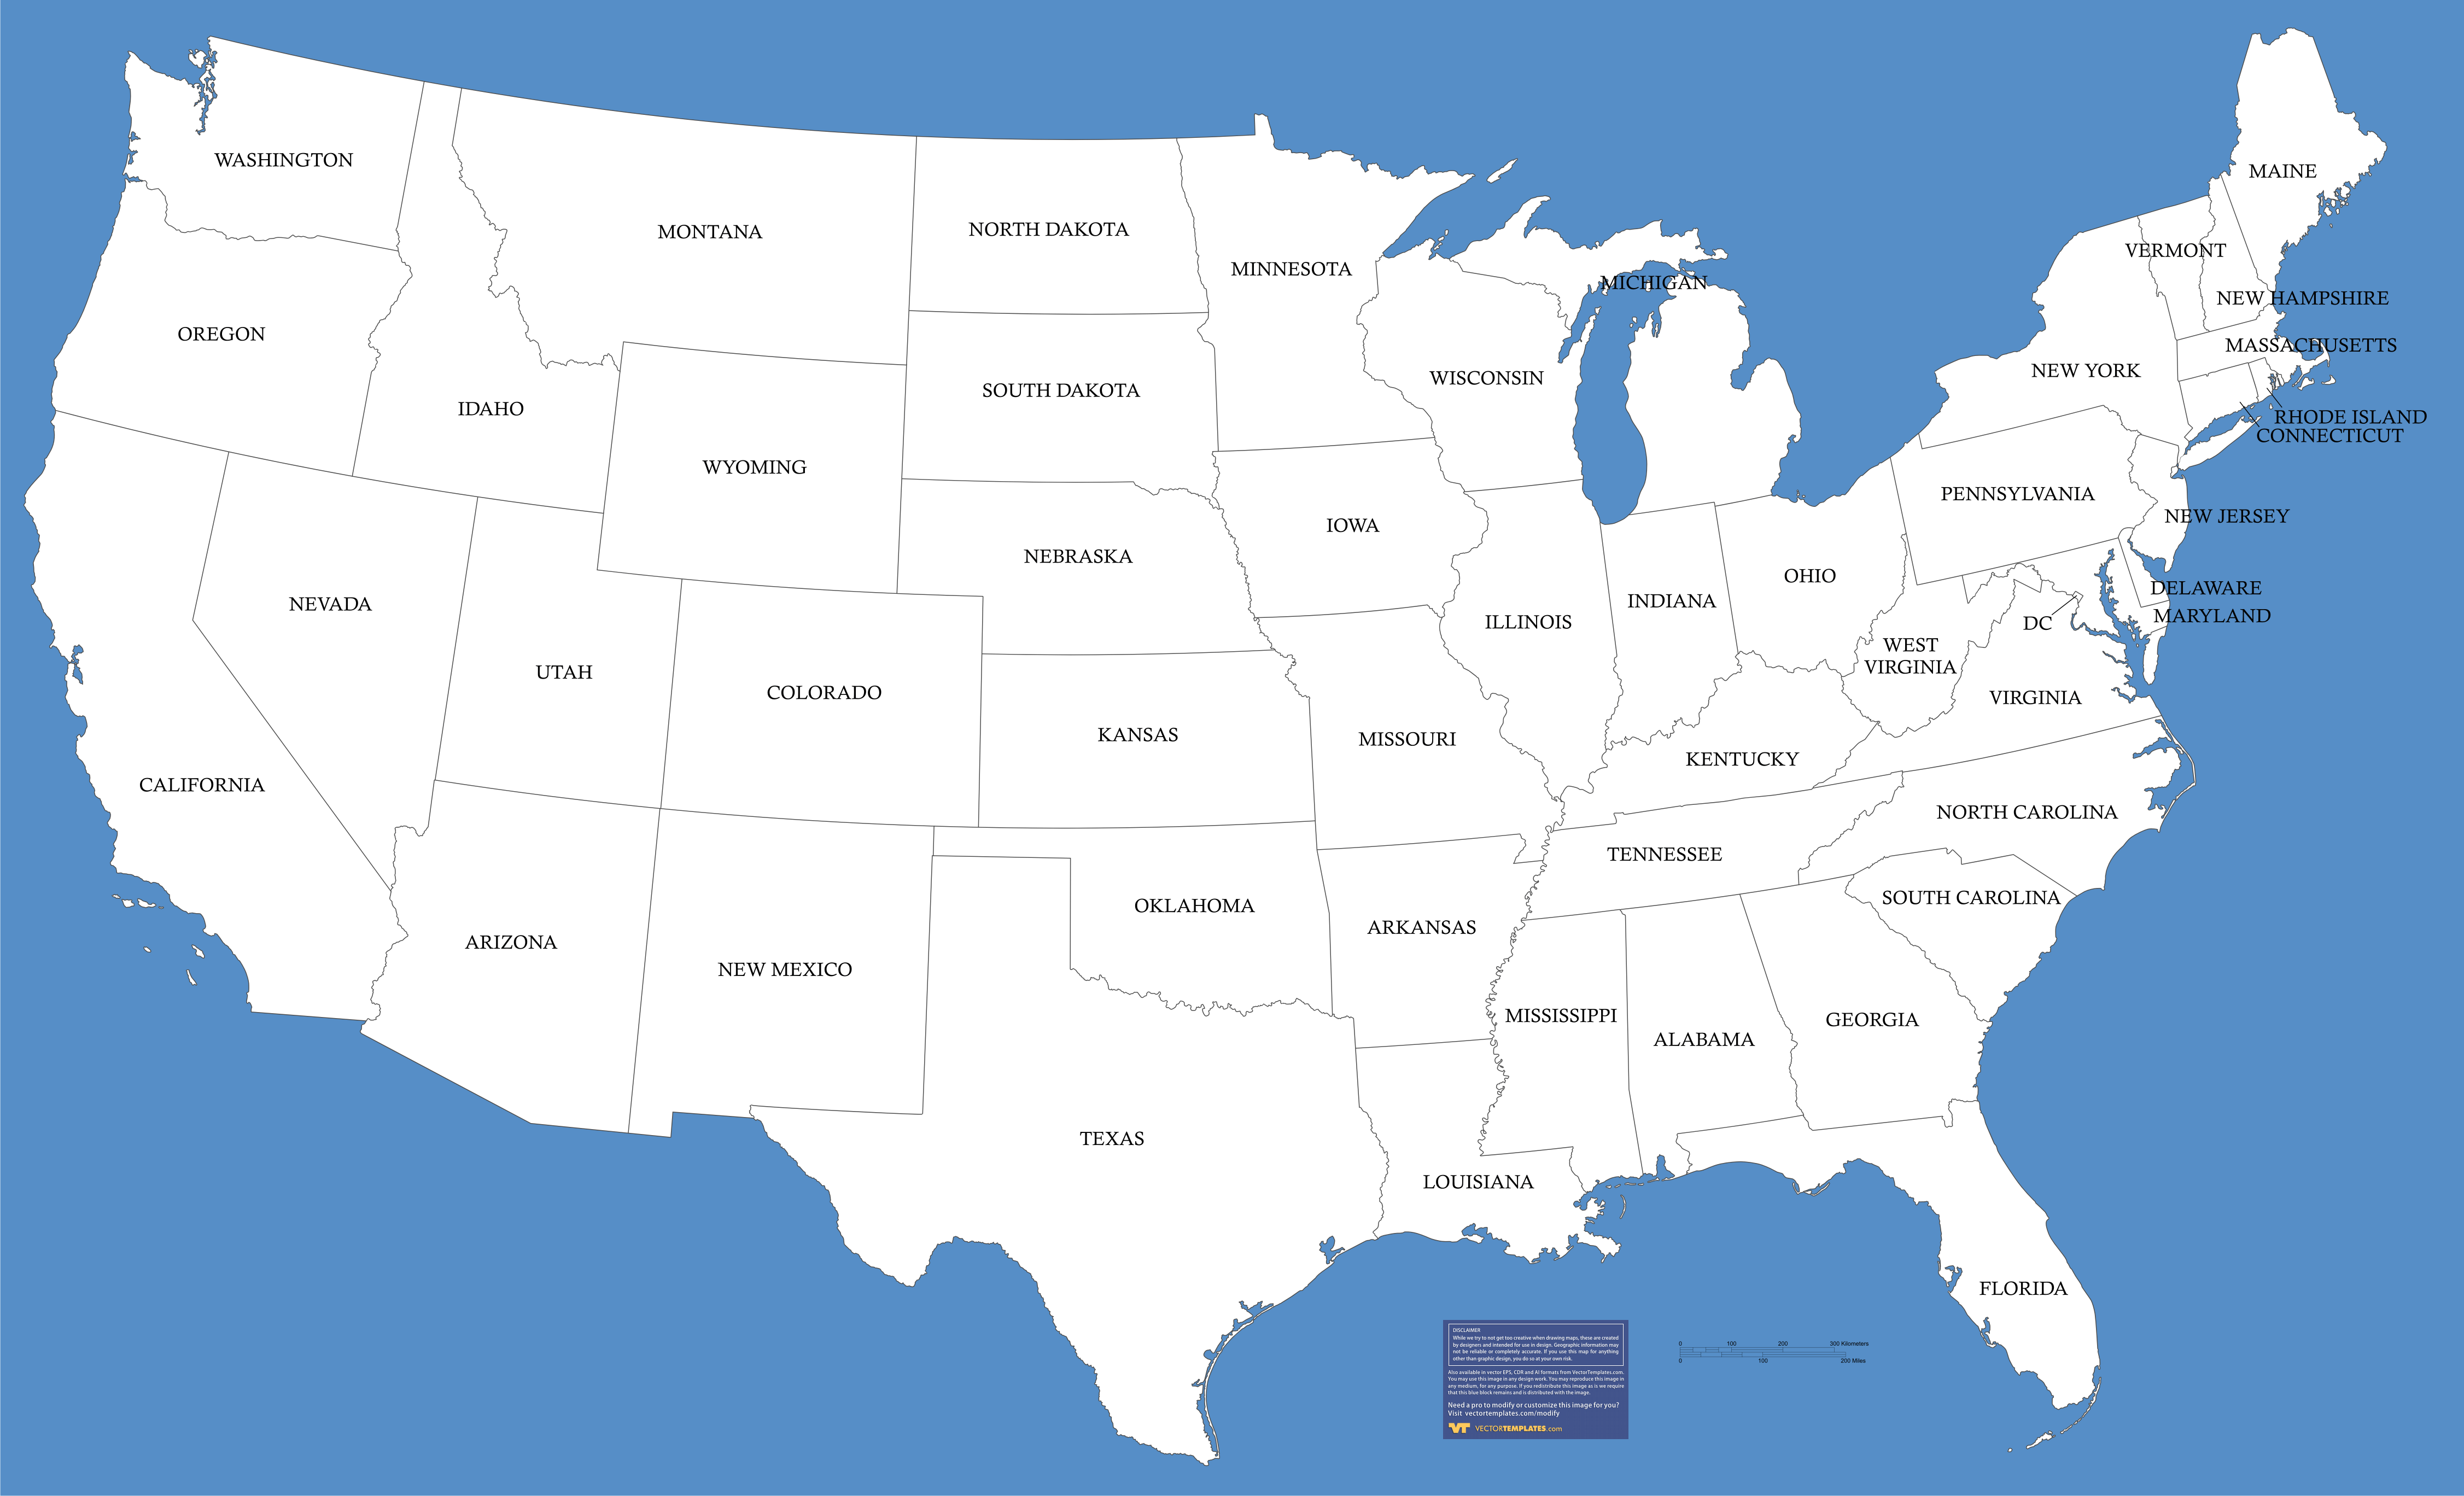 Liry of printable banner free stock us map free png files ... Usa Map Blue Template on mississippi template, usa maps united states, america powerpoint template, maryland template, animals template, california template, arizona template, oklahoma template, ball template, virginia template, oregon template, florida template, bike template, north carolina template, new jersey template, louisiana template, world template, new york template, wisconsin template, ohio template,